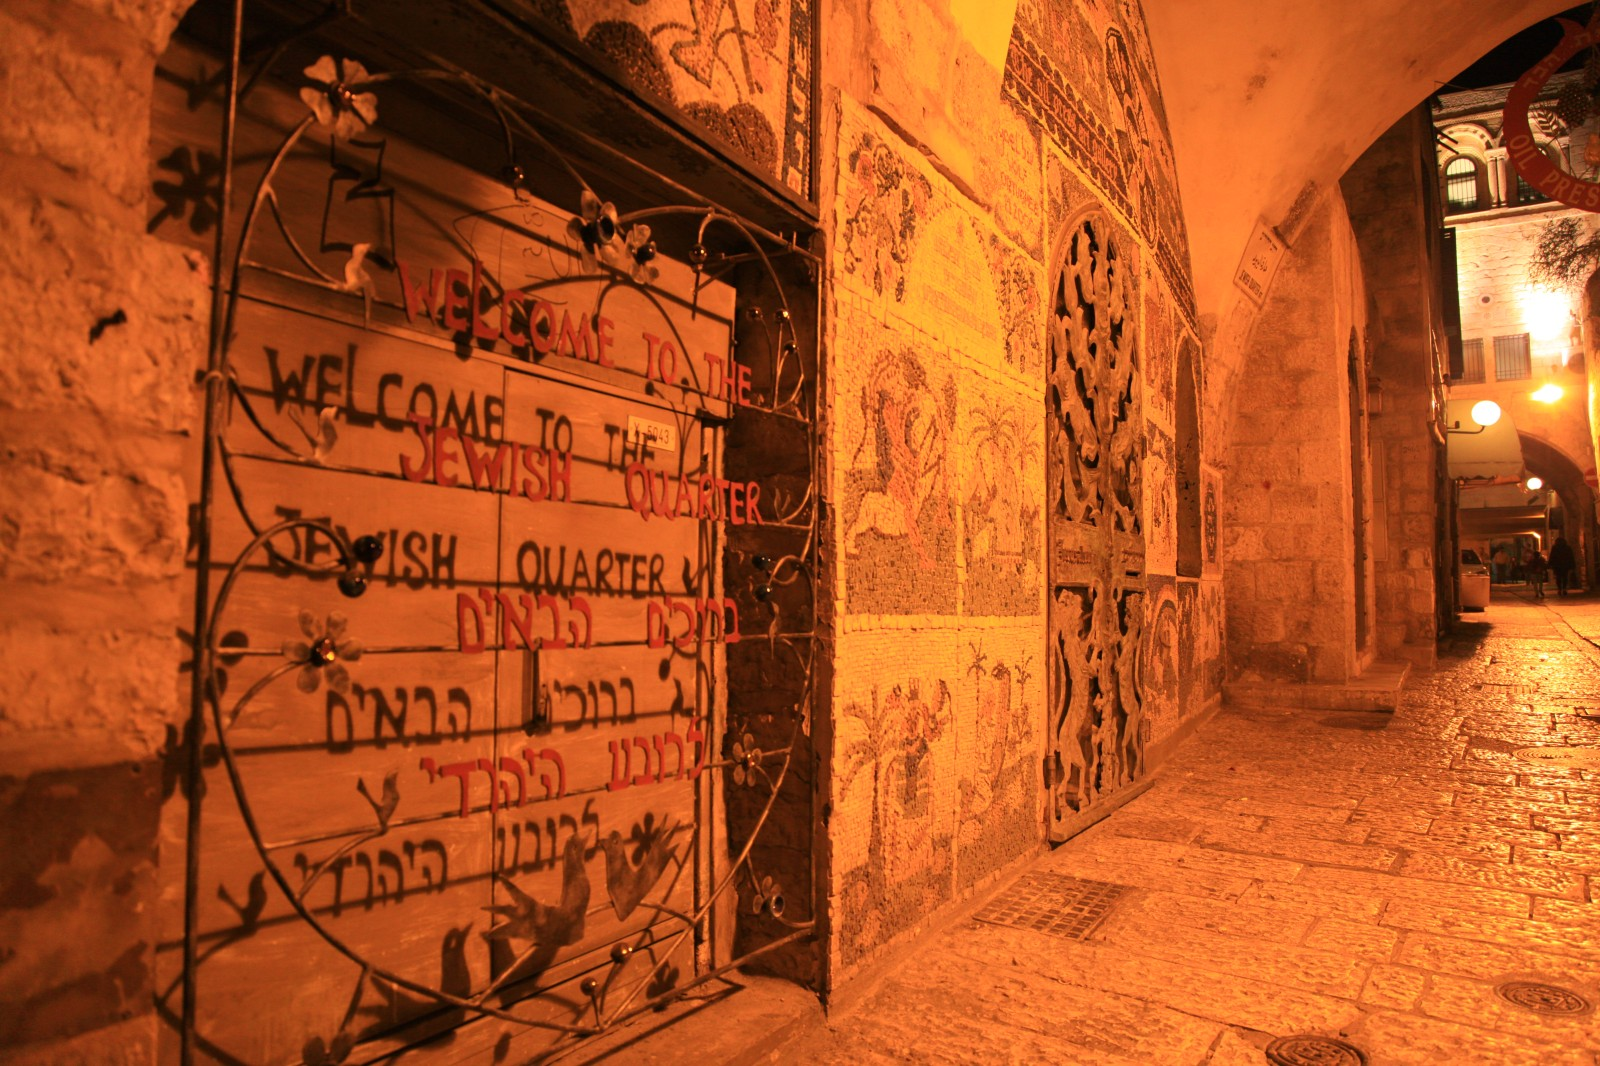 Jewish quarter welcomes you!